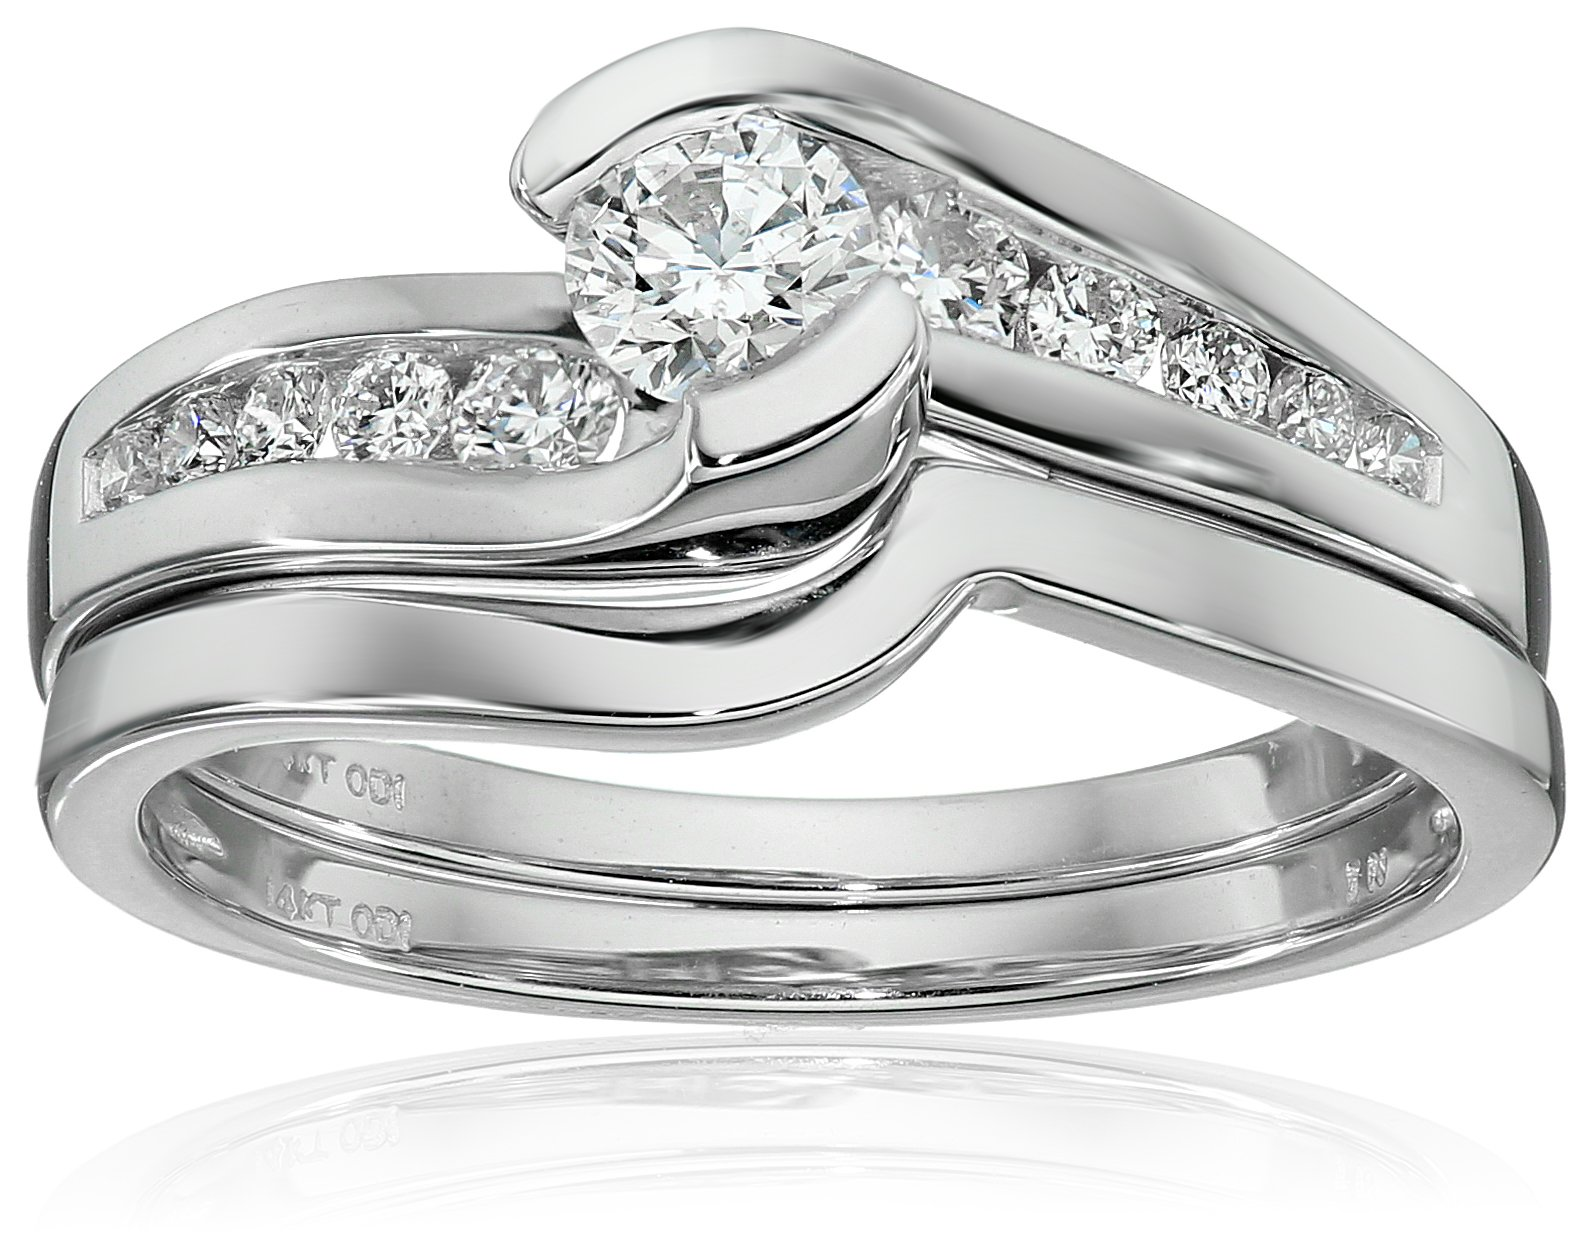 IGI Certified 14k White Gold Diamond Channel Bridal Wedding Ring Set (5/8 cttw, H-I Color, I1-I2 Clarity), Size 7 by Amazon Collection